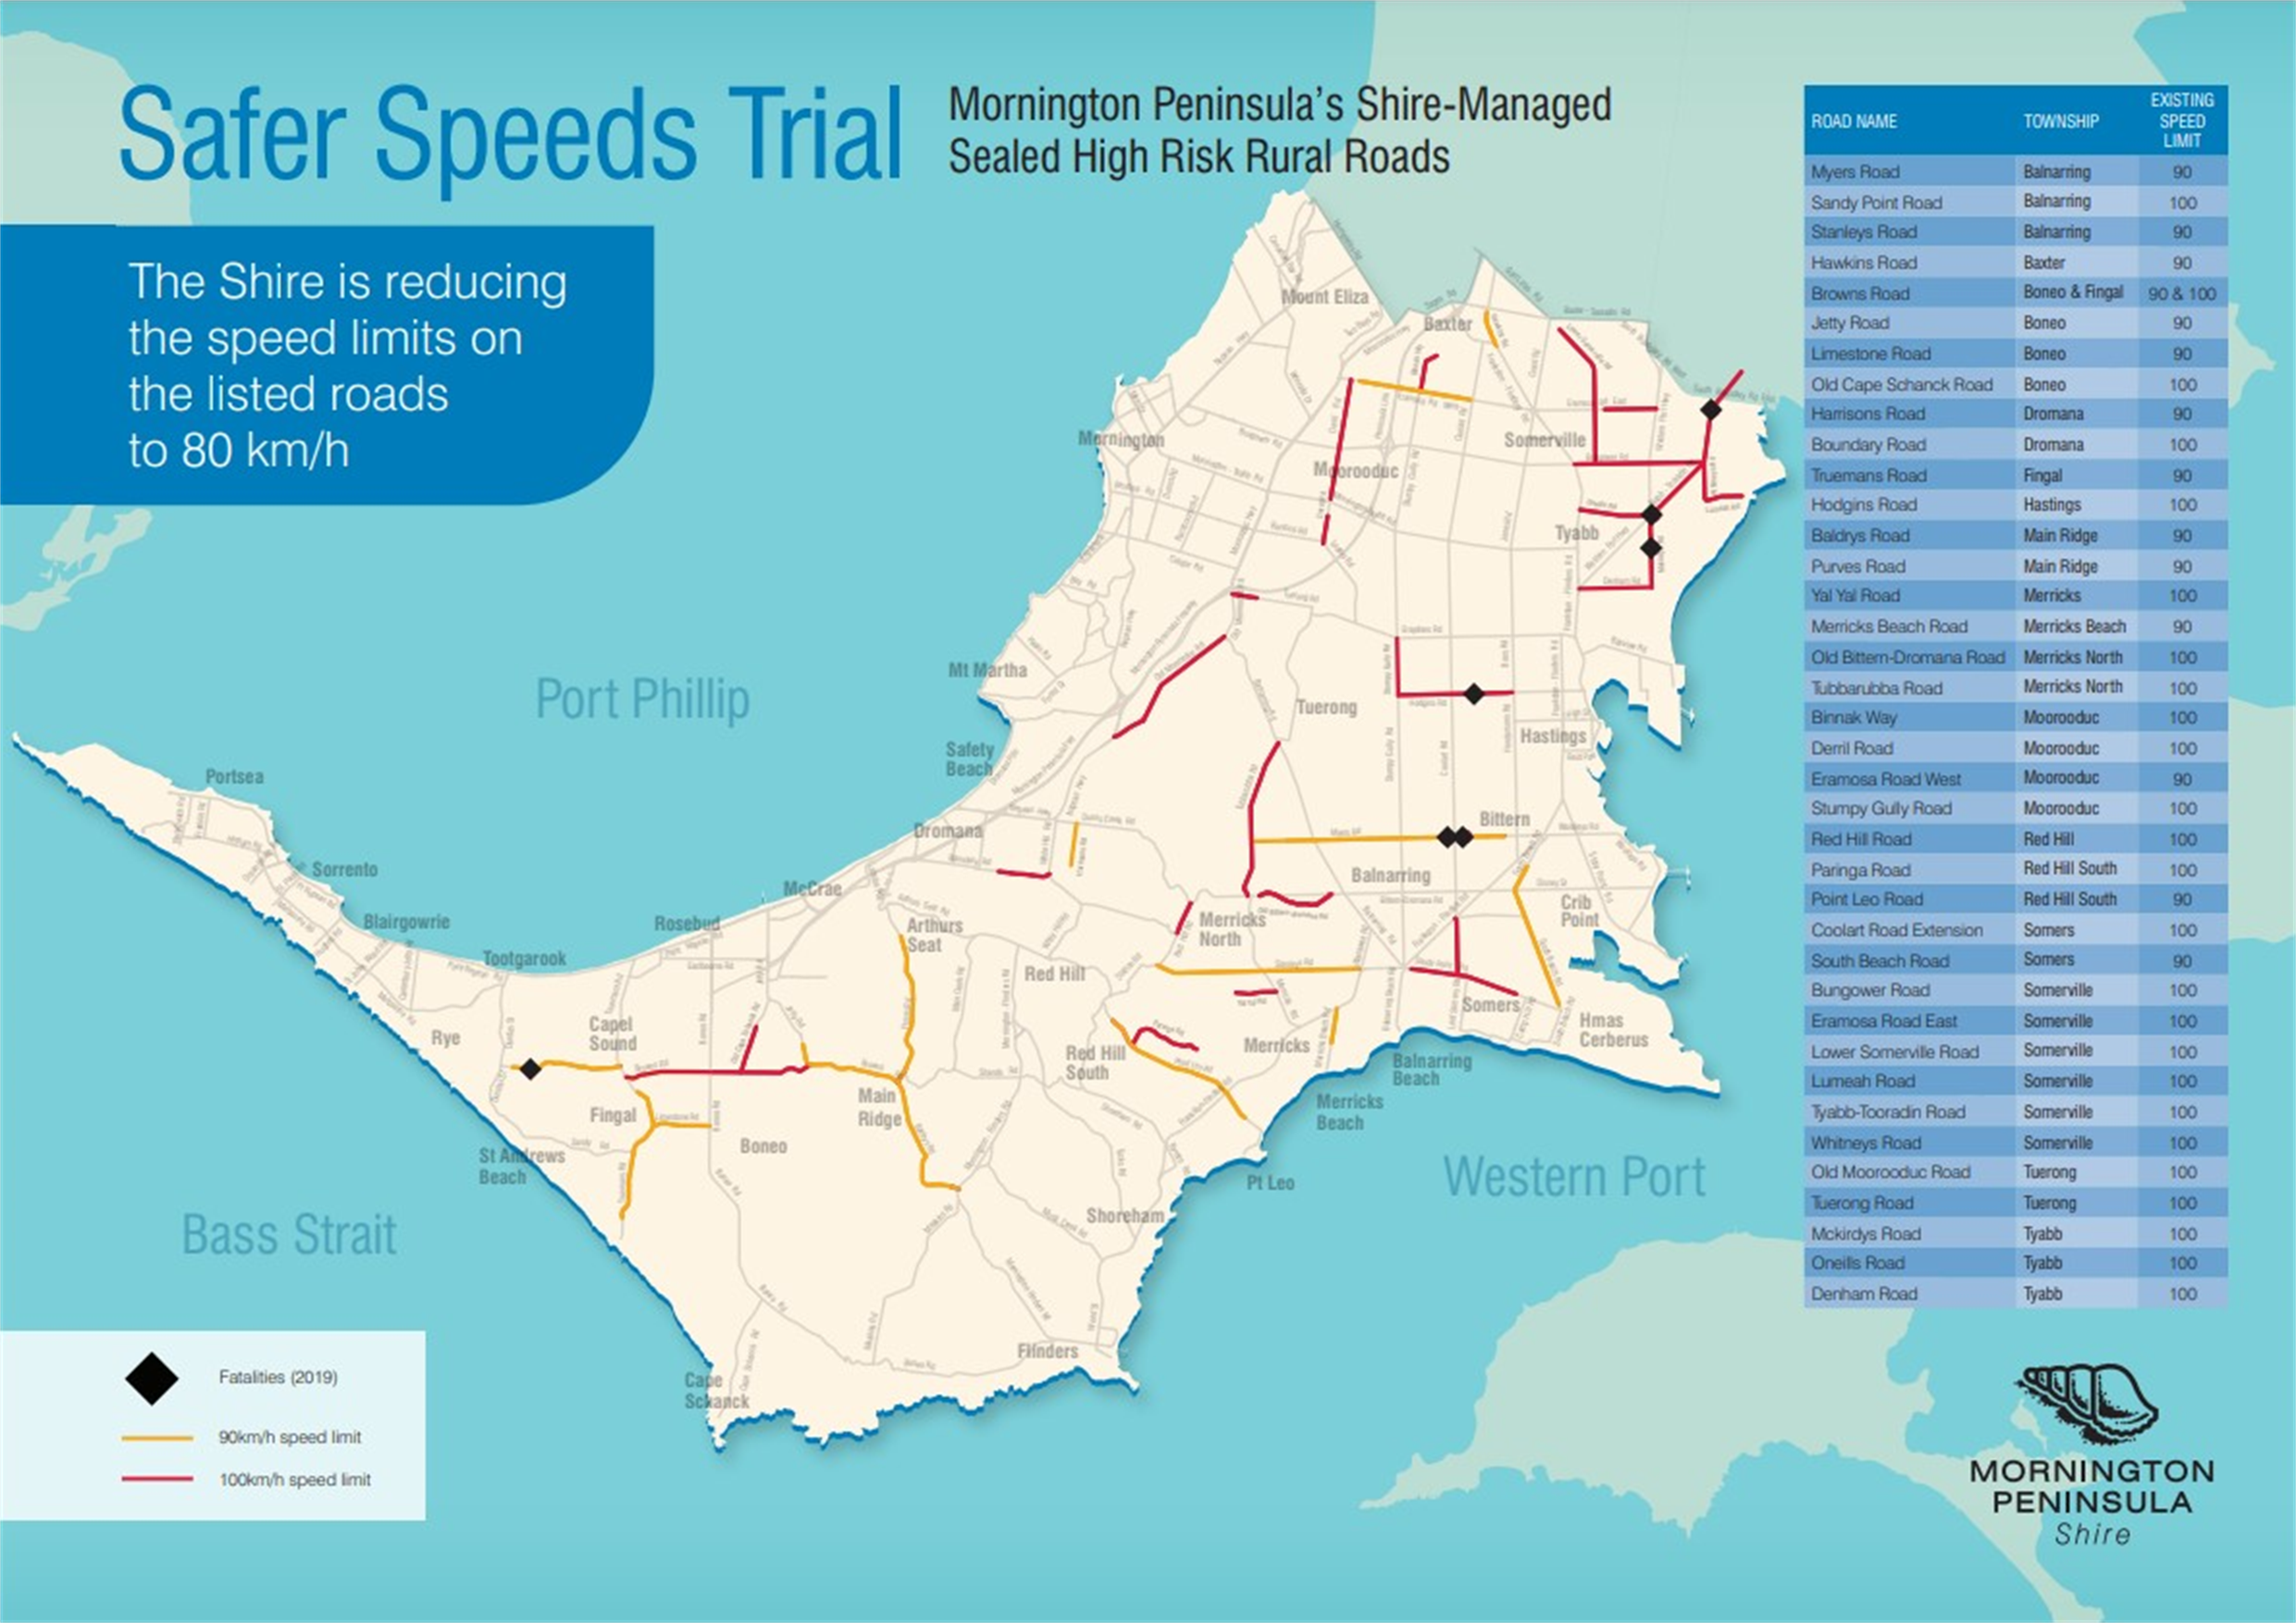 Safer Speeds Trial Map